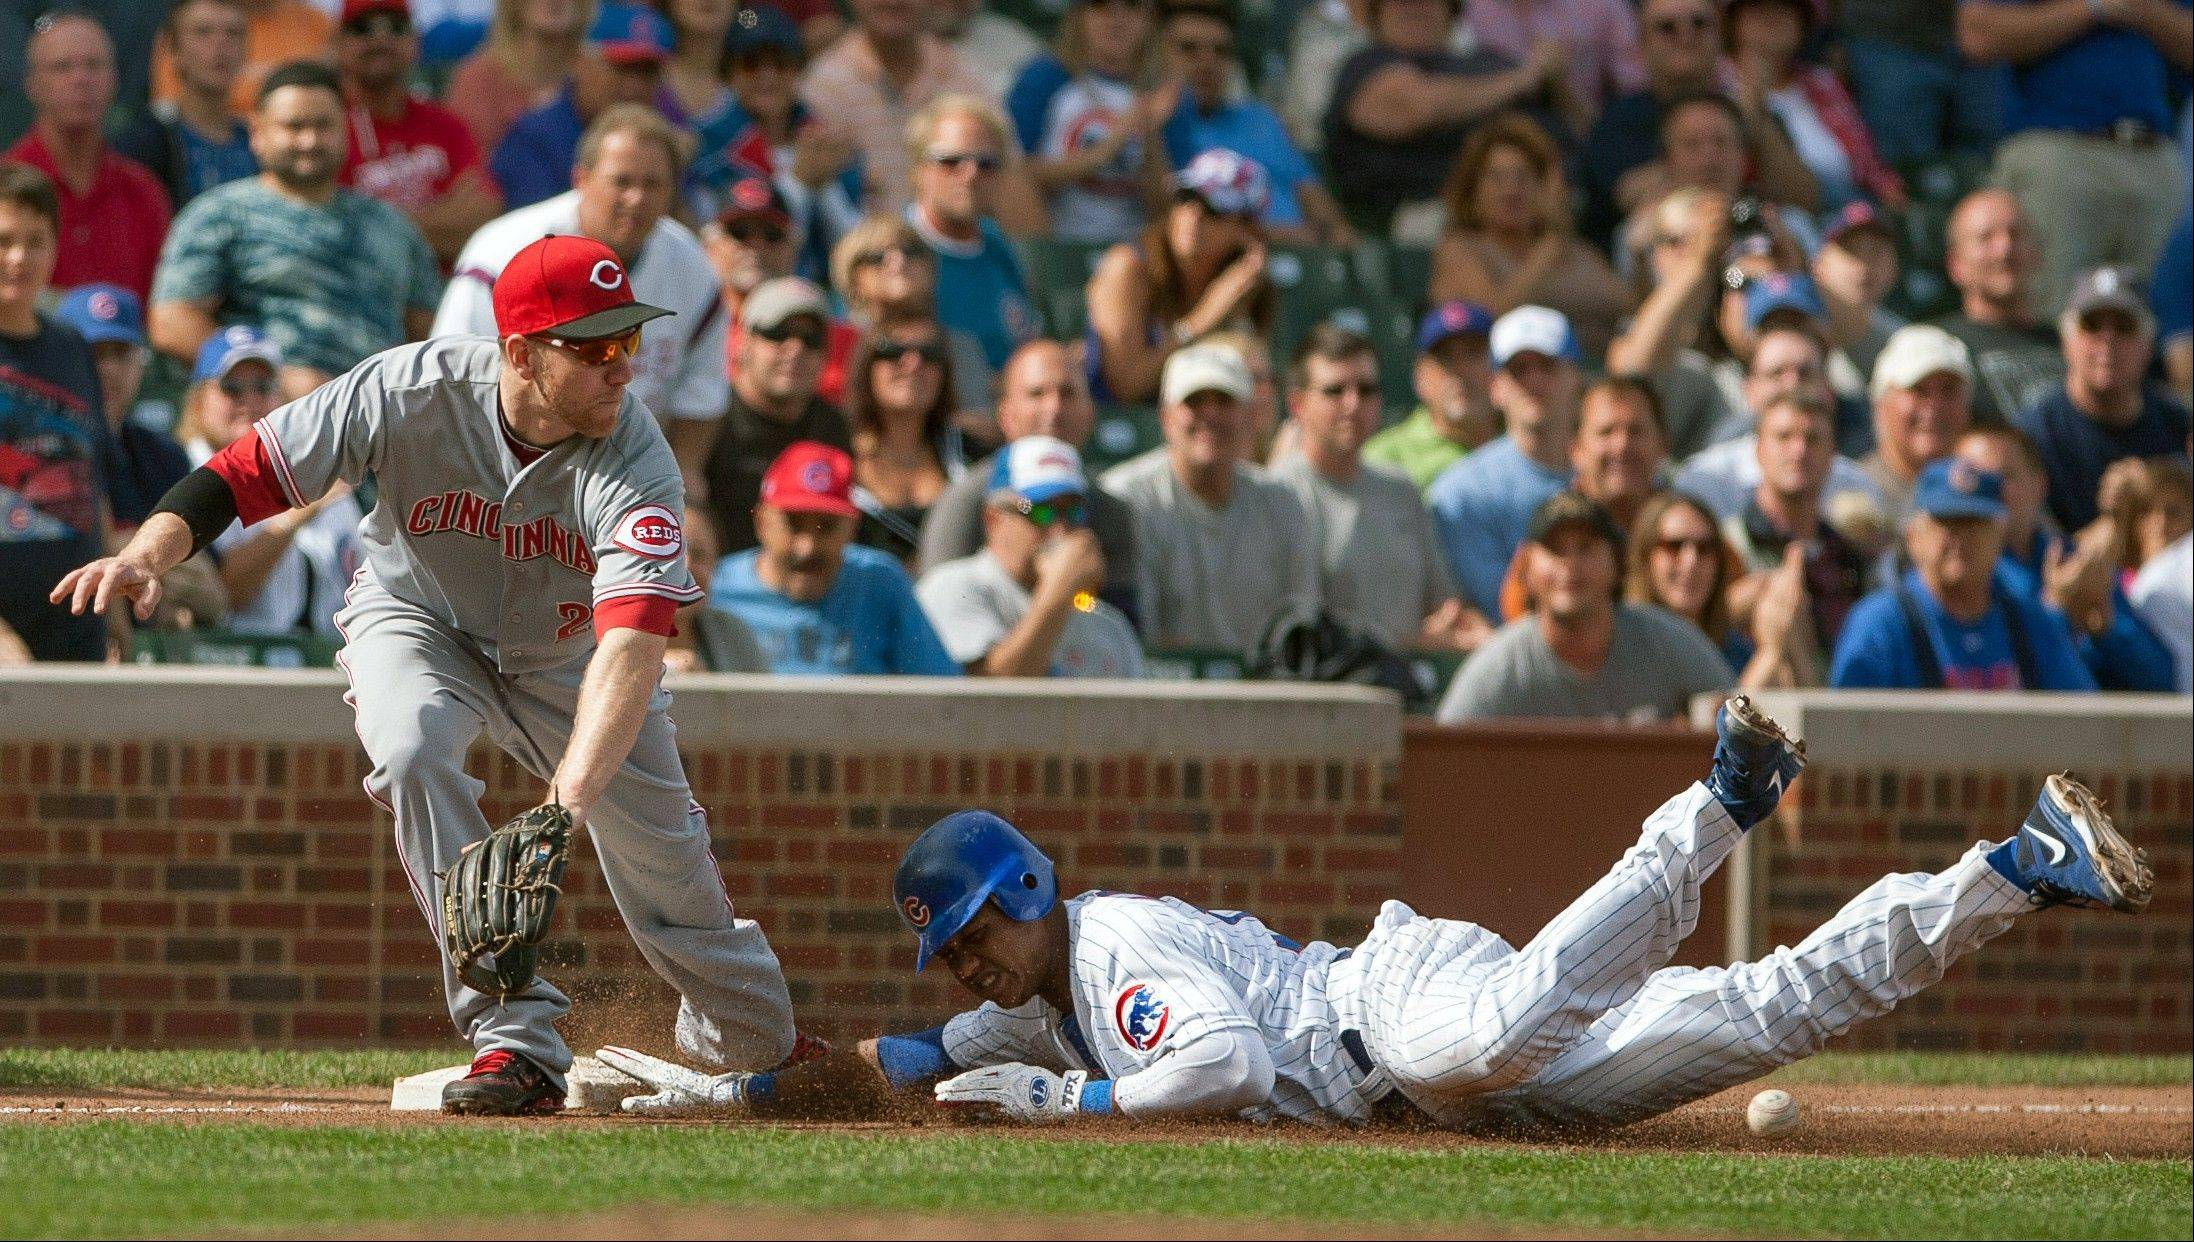 Cubs shortstop Starlin Castro beats the ball to third with a triple Thursday during the fourth inning as Cincinnati Reds third baseman Todd Frazier reaches for the throw at Wrigley Field.